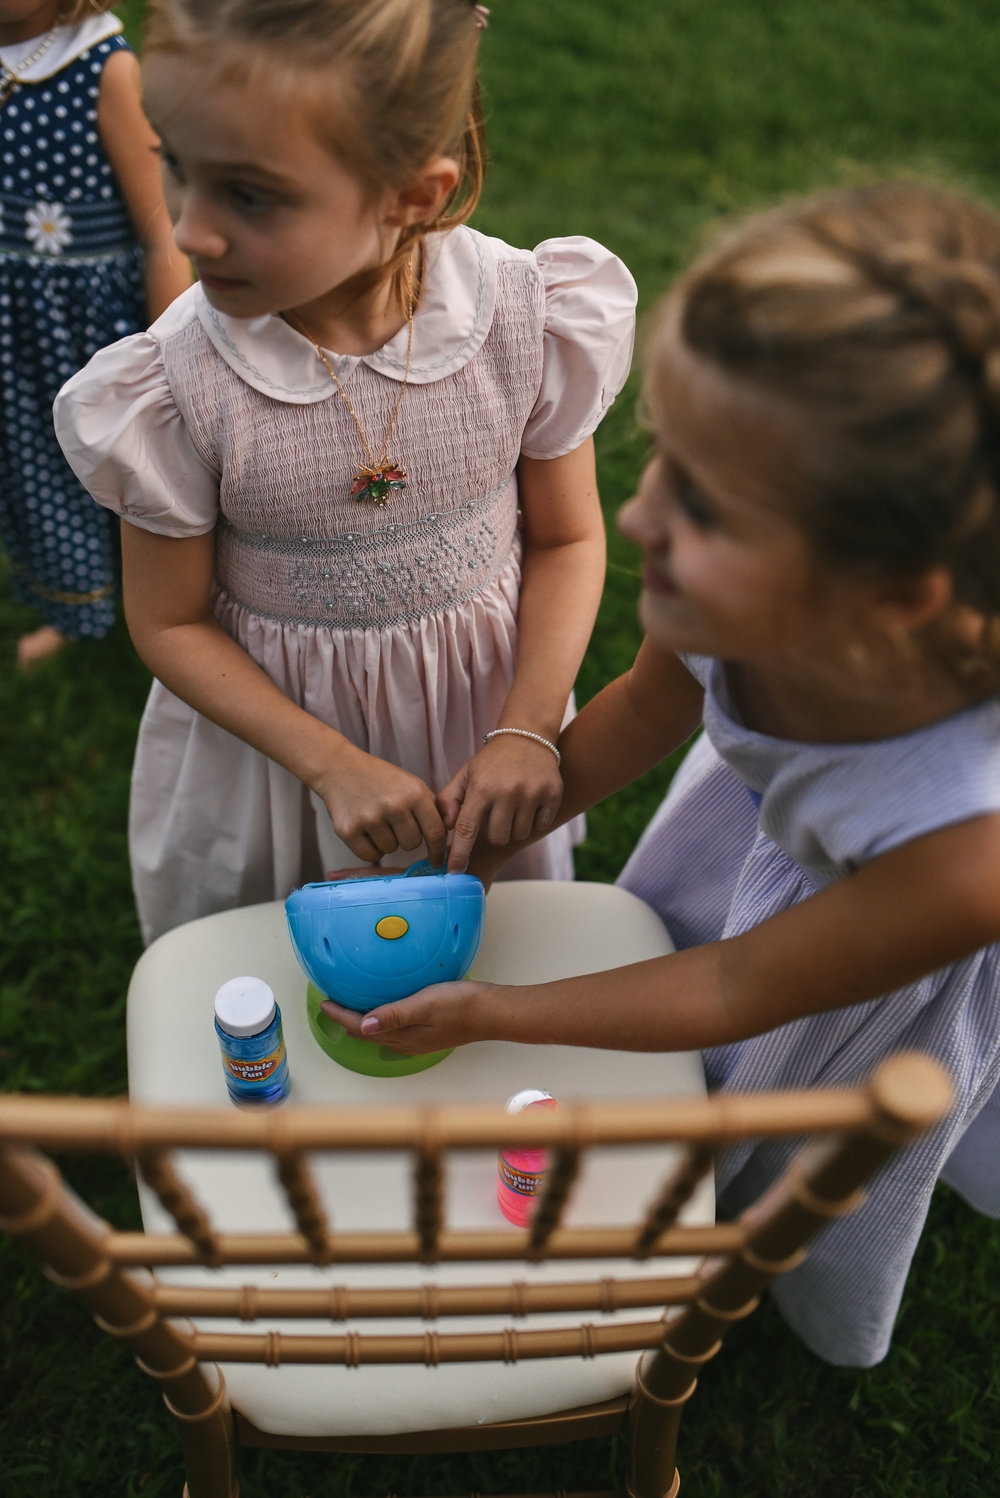 Maryland, Eastern Shore, Baltimore Wedding Photographer, Romantic, Boho, Backyard Wedding, Nature, Little Girls Playing with Bubbles at Reception